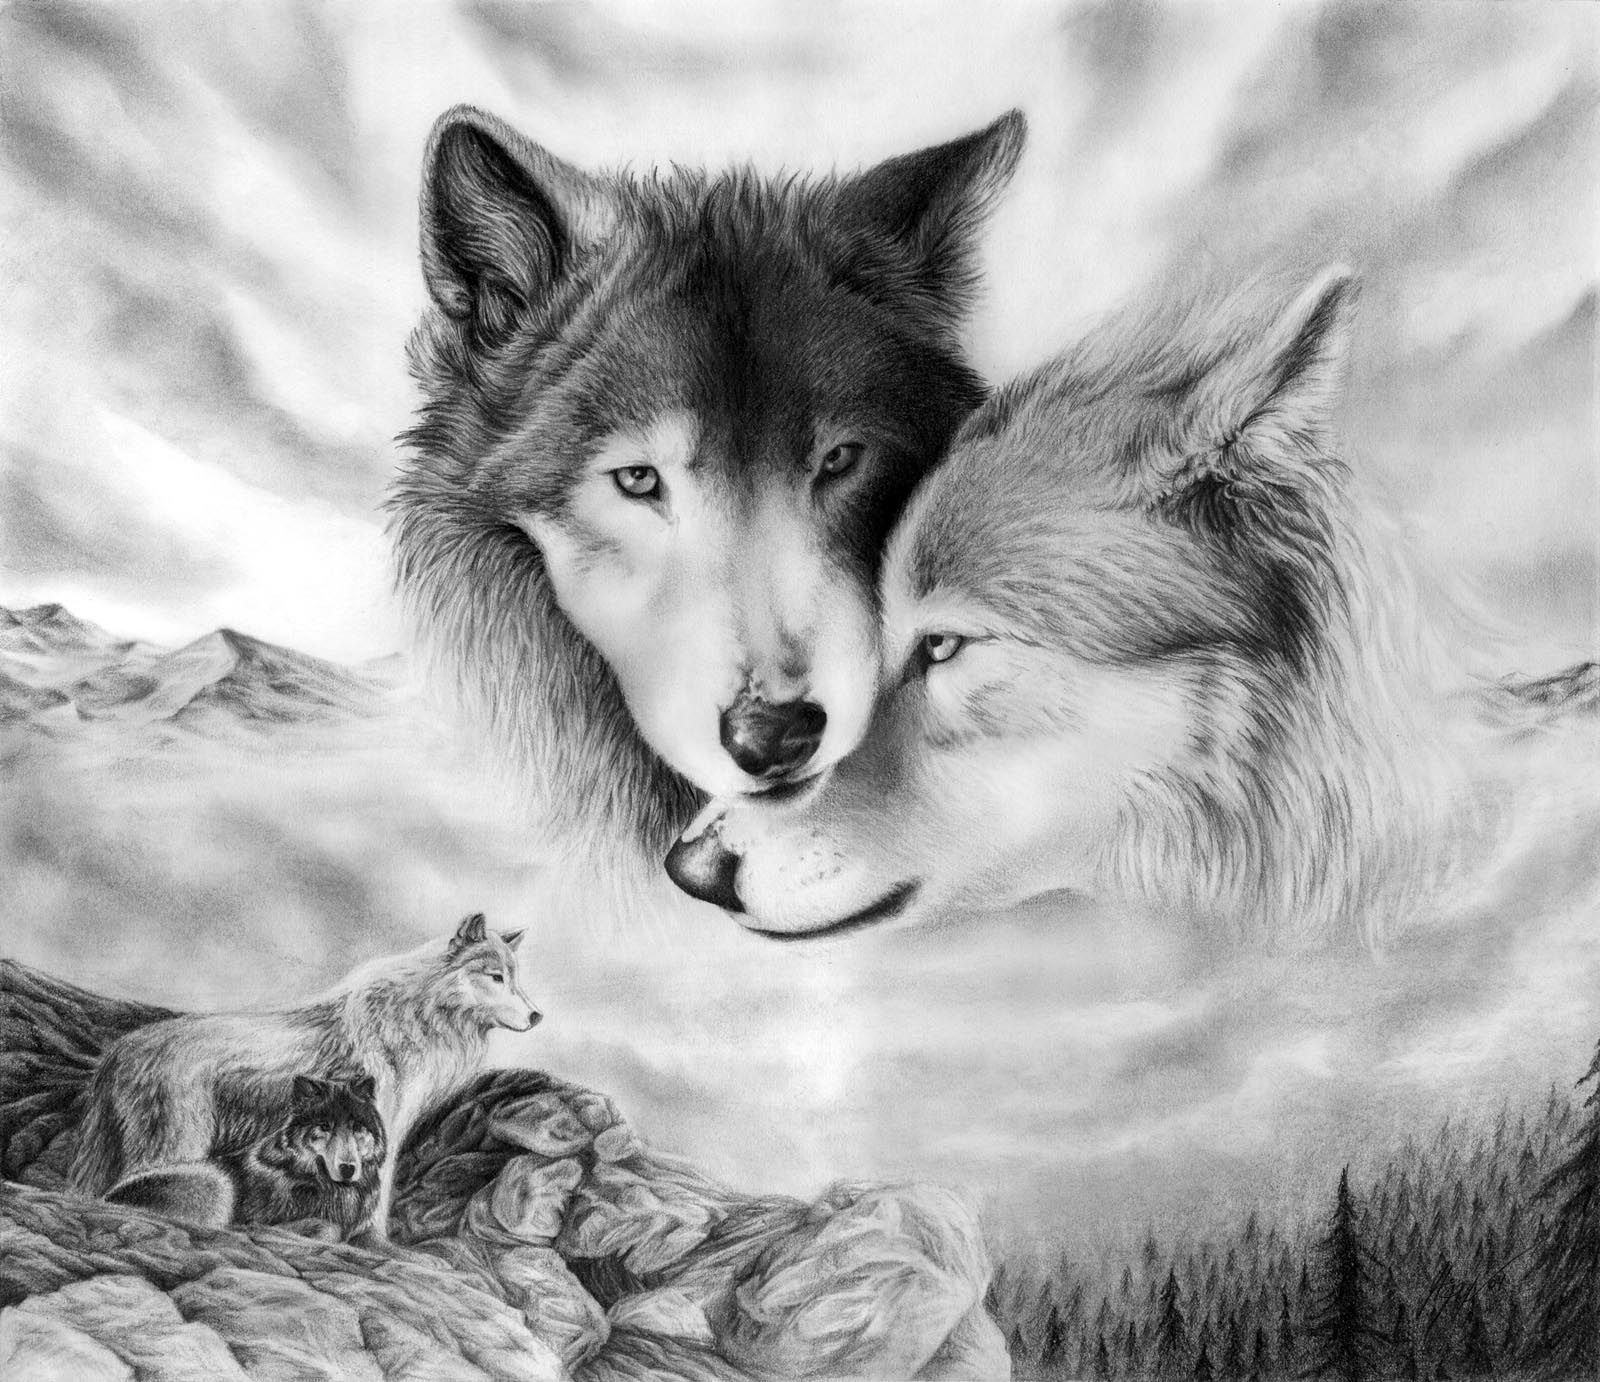 Wolf Is The Grand Teacher Wolf Is The Sage Who After Many Winters Upon The Sacred Path And Seeking The Ways Of Wi Cool Wolf Drawings Wolf Love Wolf Pictures